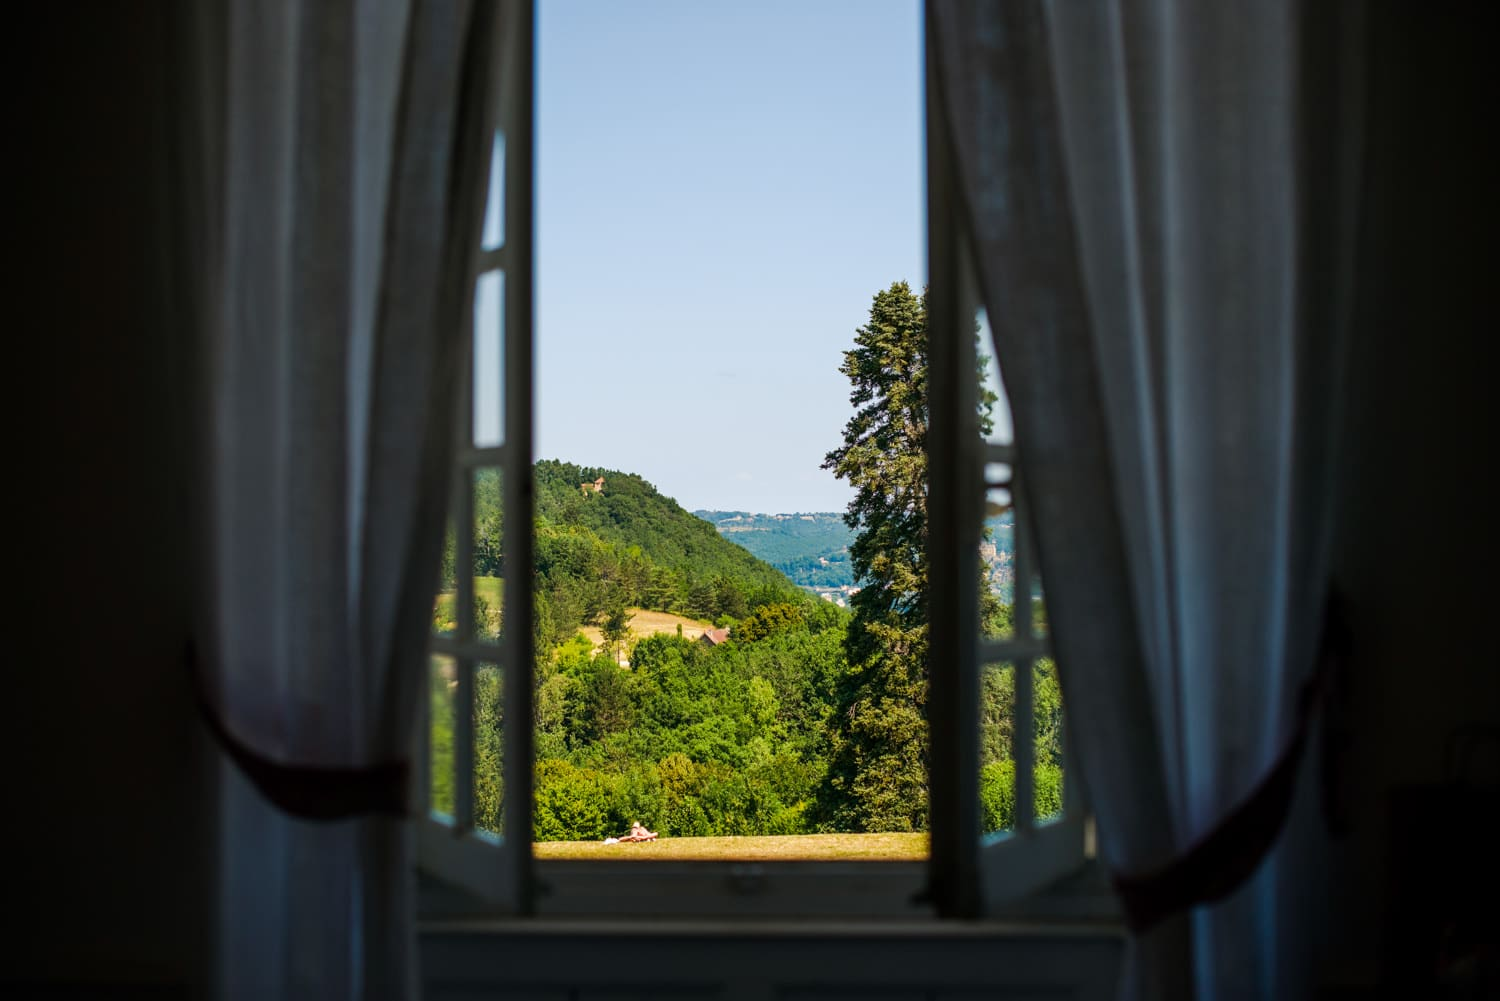 view out window of Chateau de Lacoste wedding